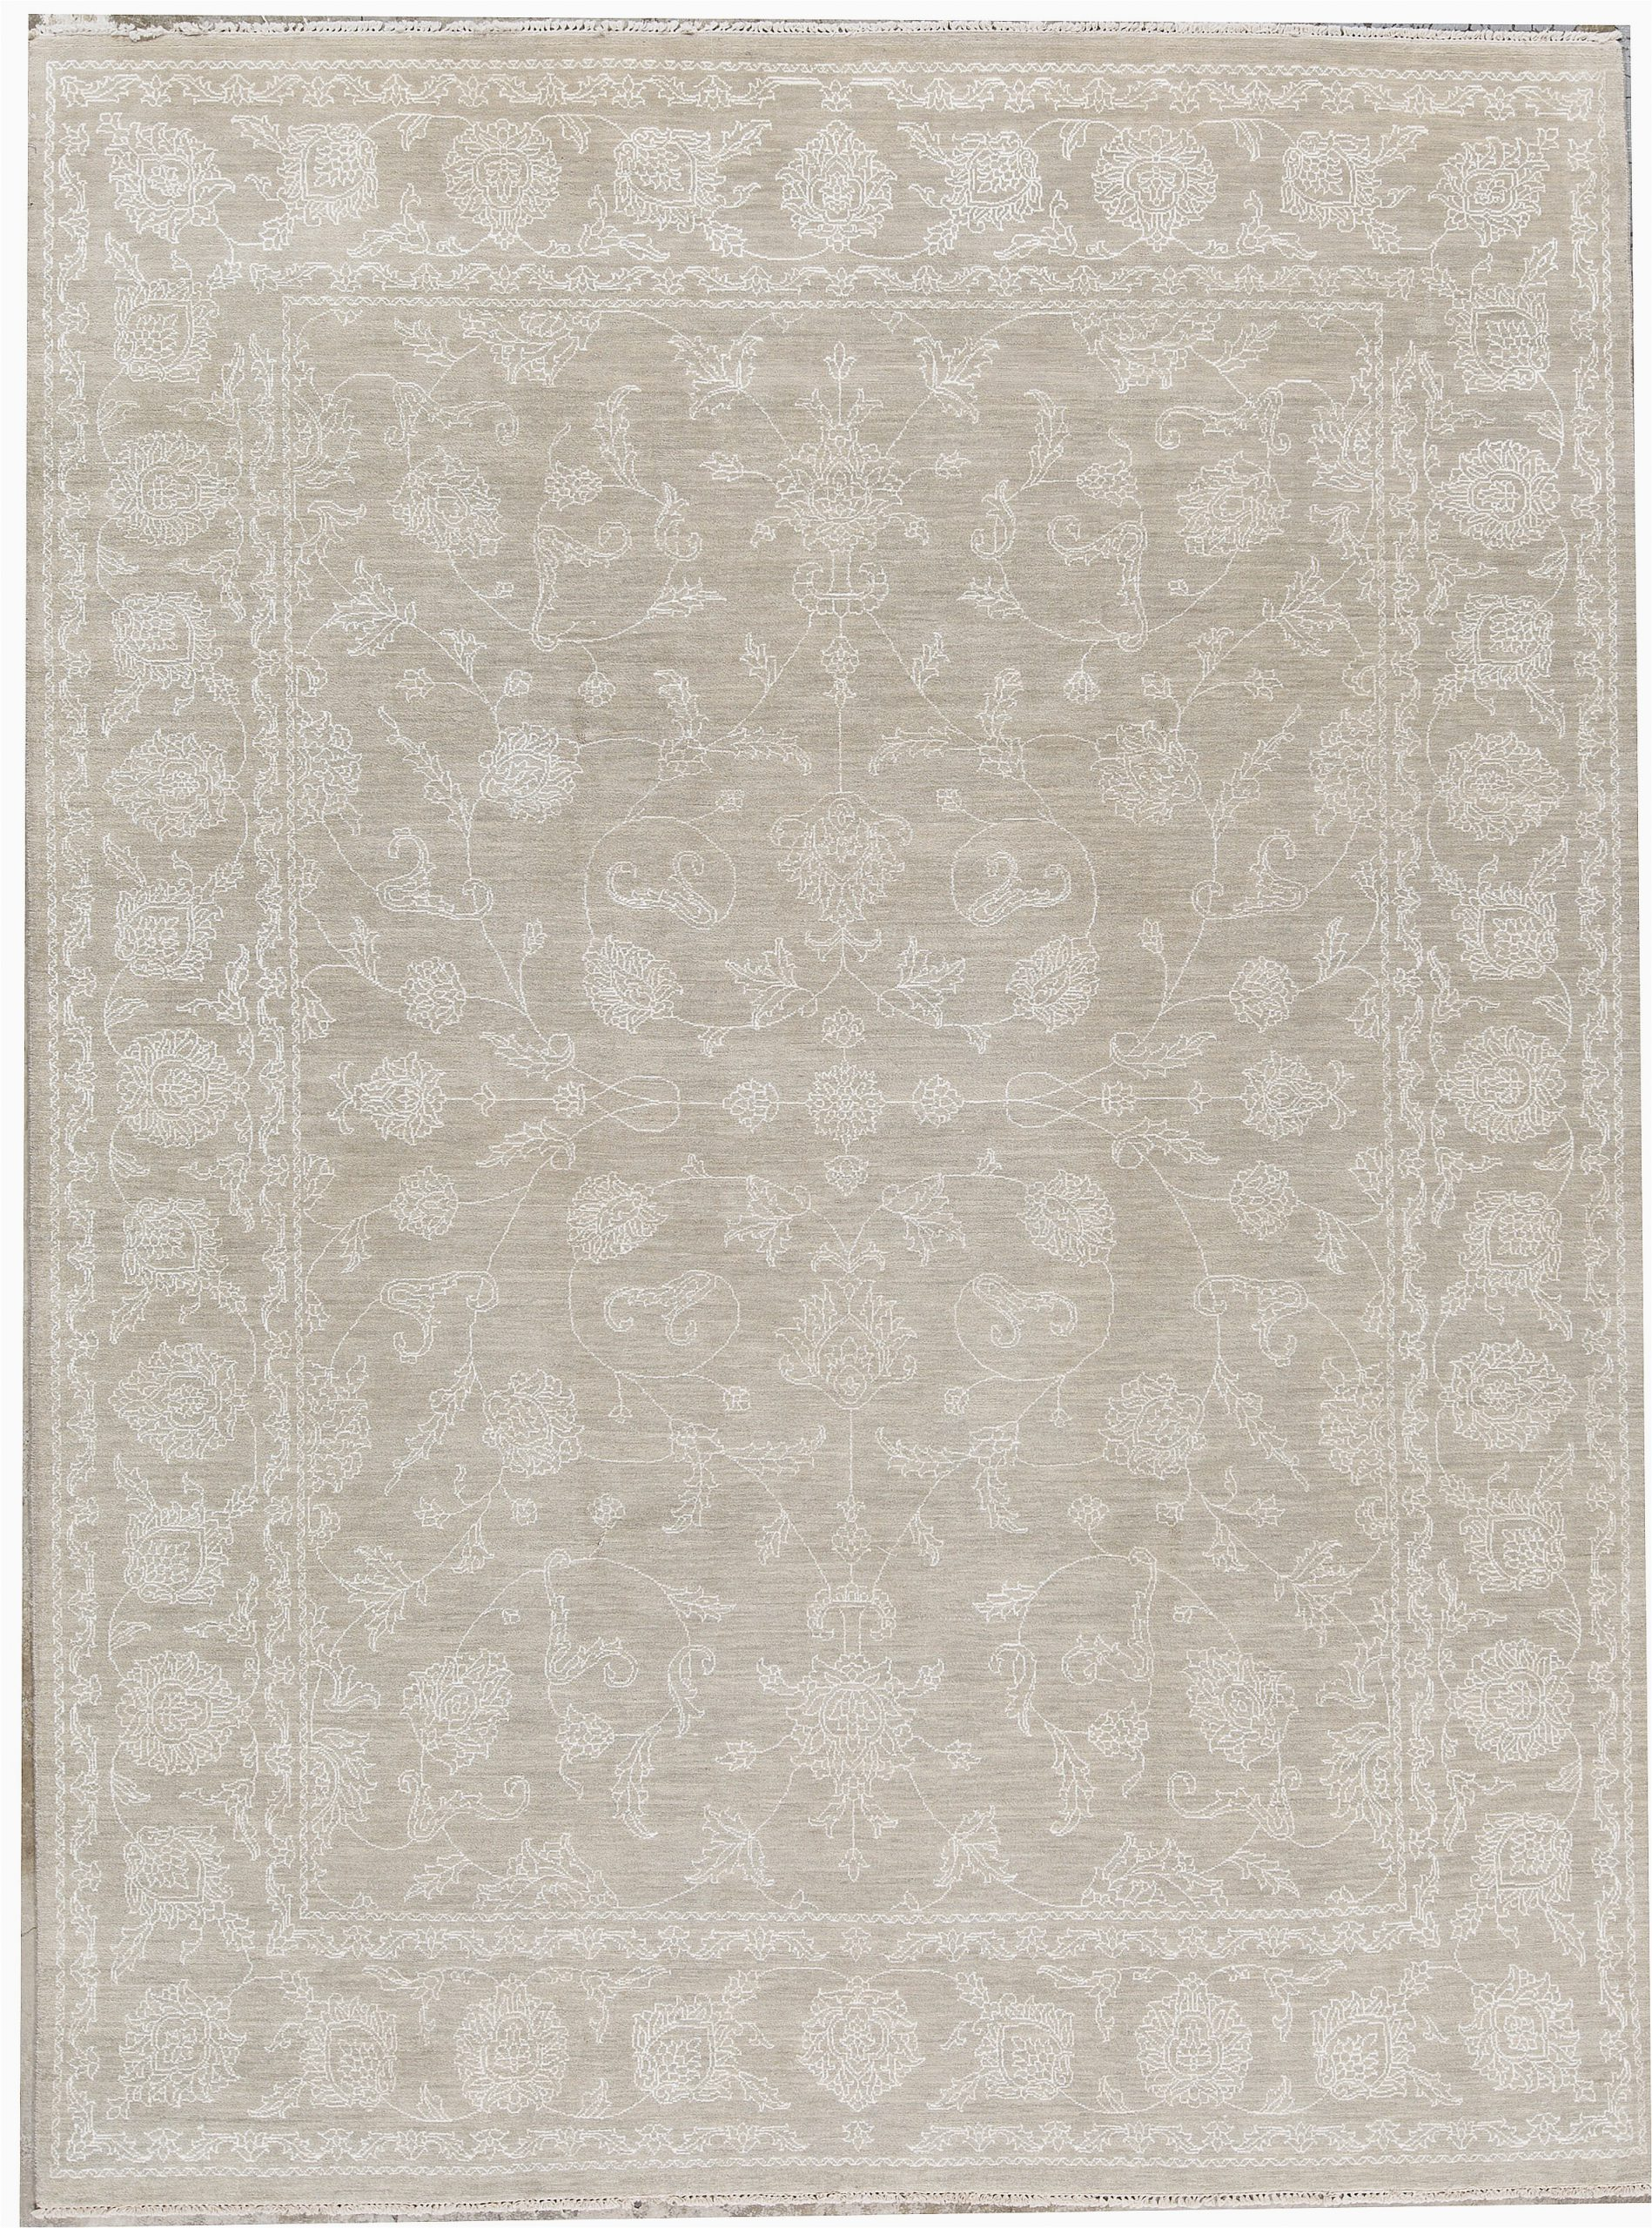 bokara rug co inc one of a kind cornwall hand knotted light gray 810 x 1110 wool area rug abhd8204